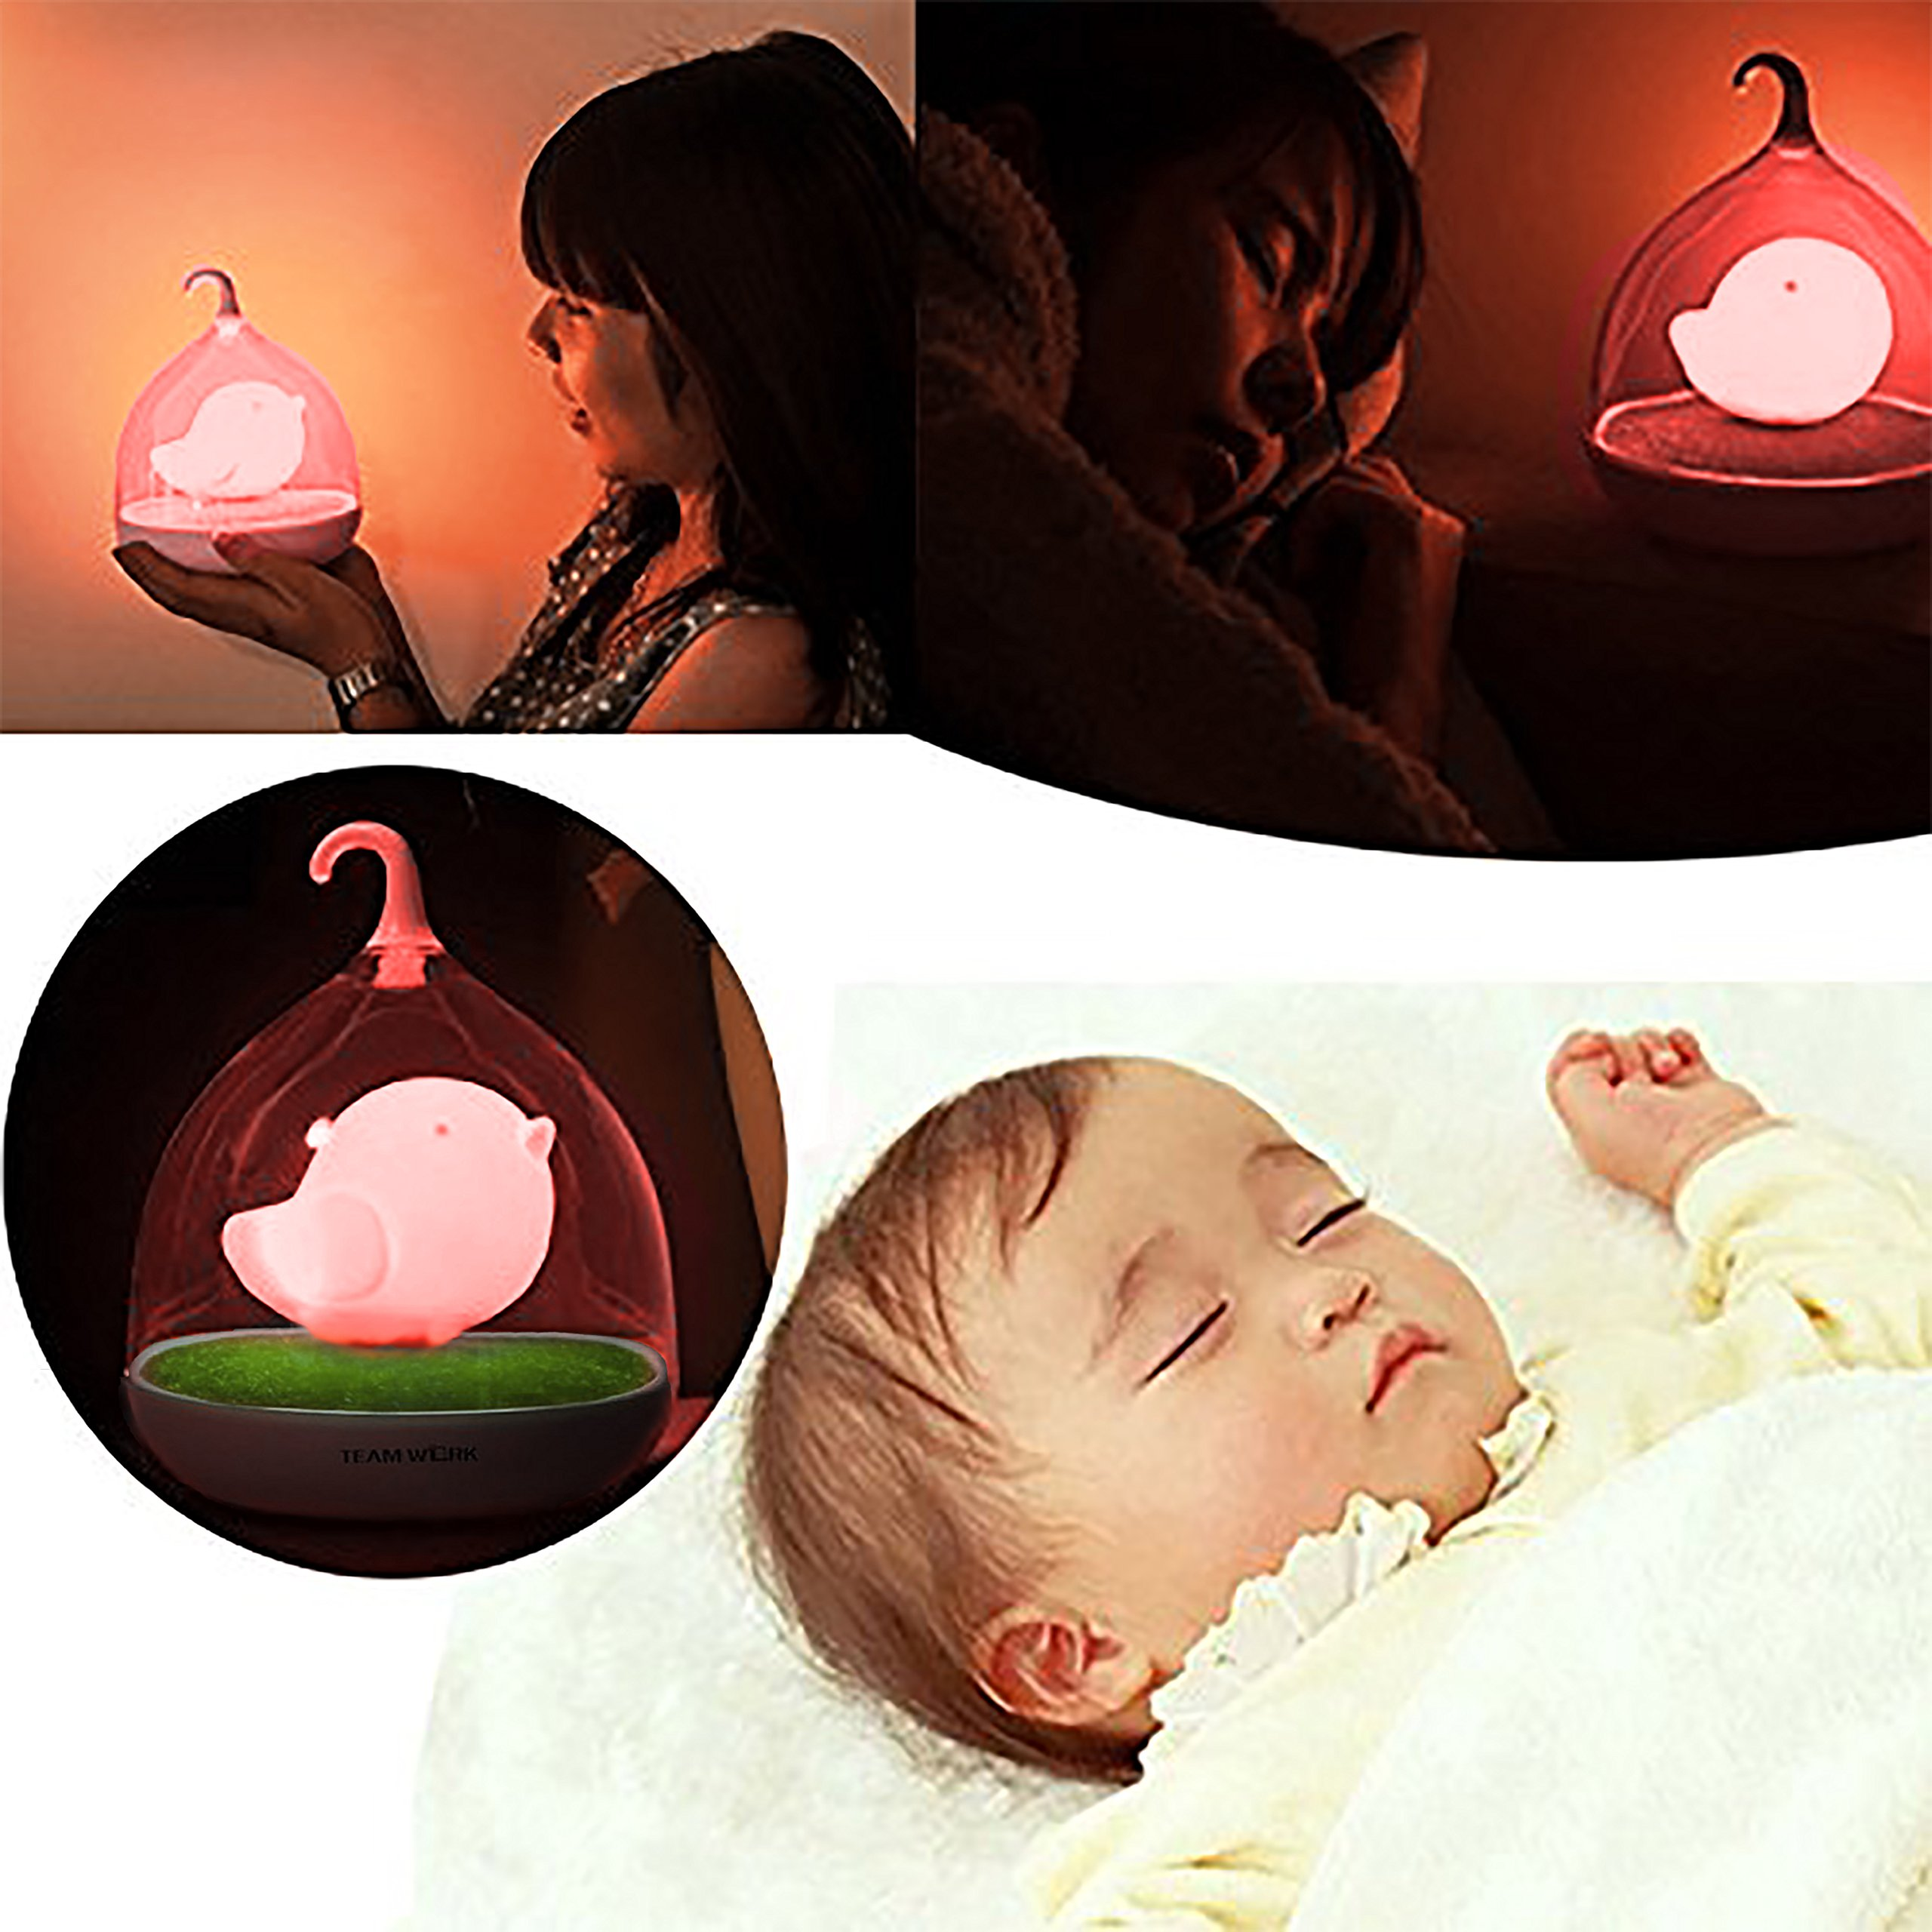 LED Pink Bird bight Light Childrens Toddler and Baby Bird Night Lights with Usb Charger Included! GREAT BABY SHOWER GIFT! Soft Light Comforting to Help Your Baby Fall Asleep Faster by Decor Hut